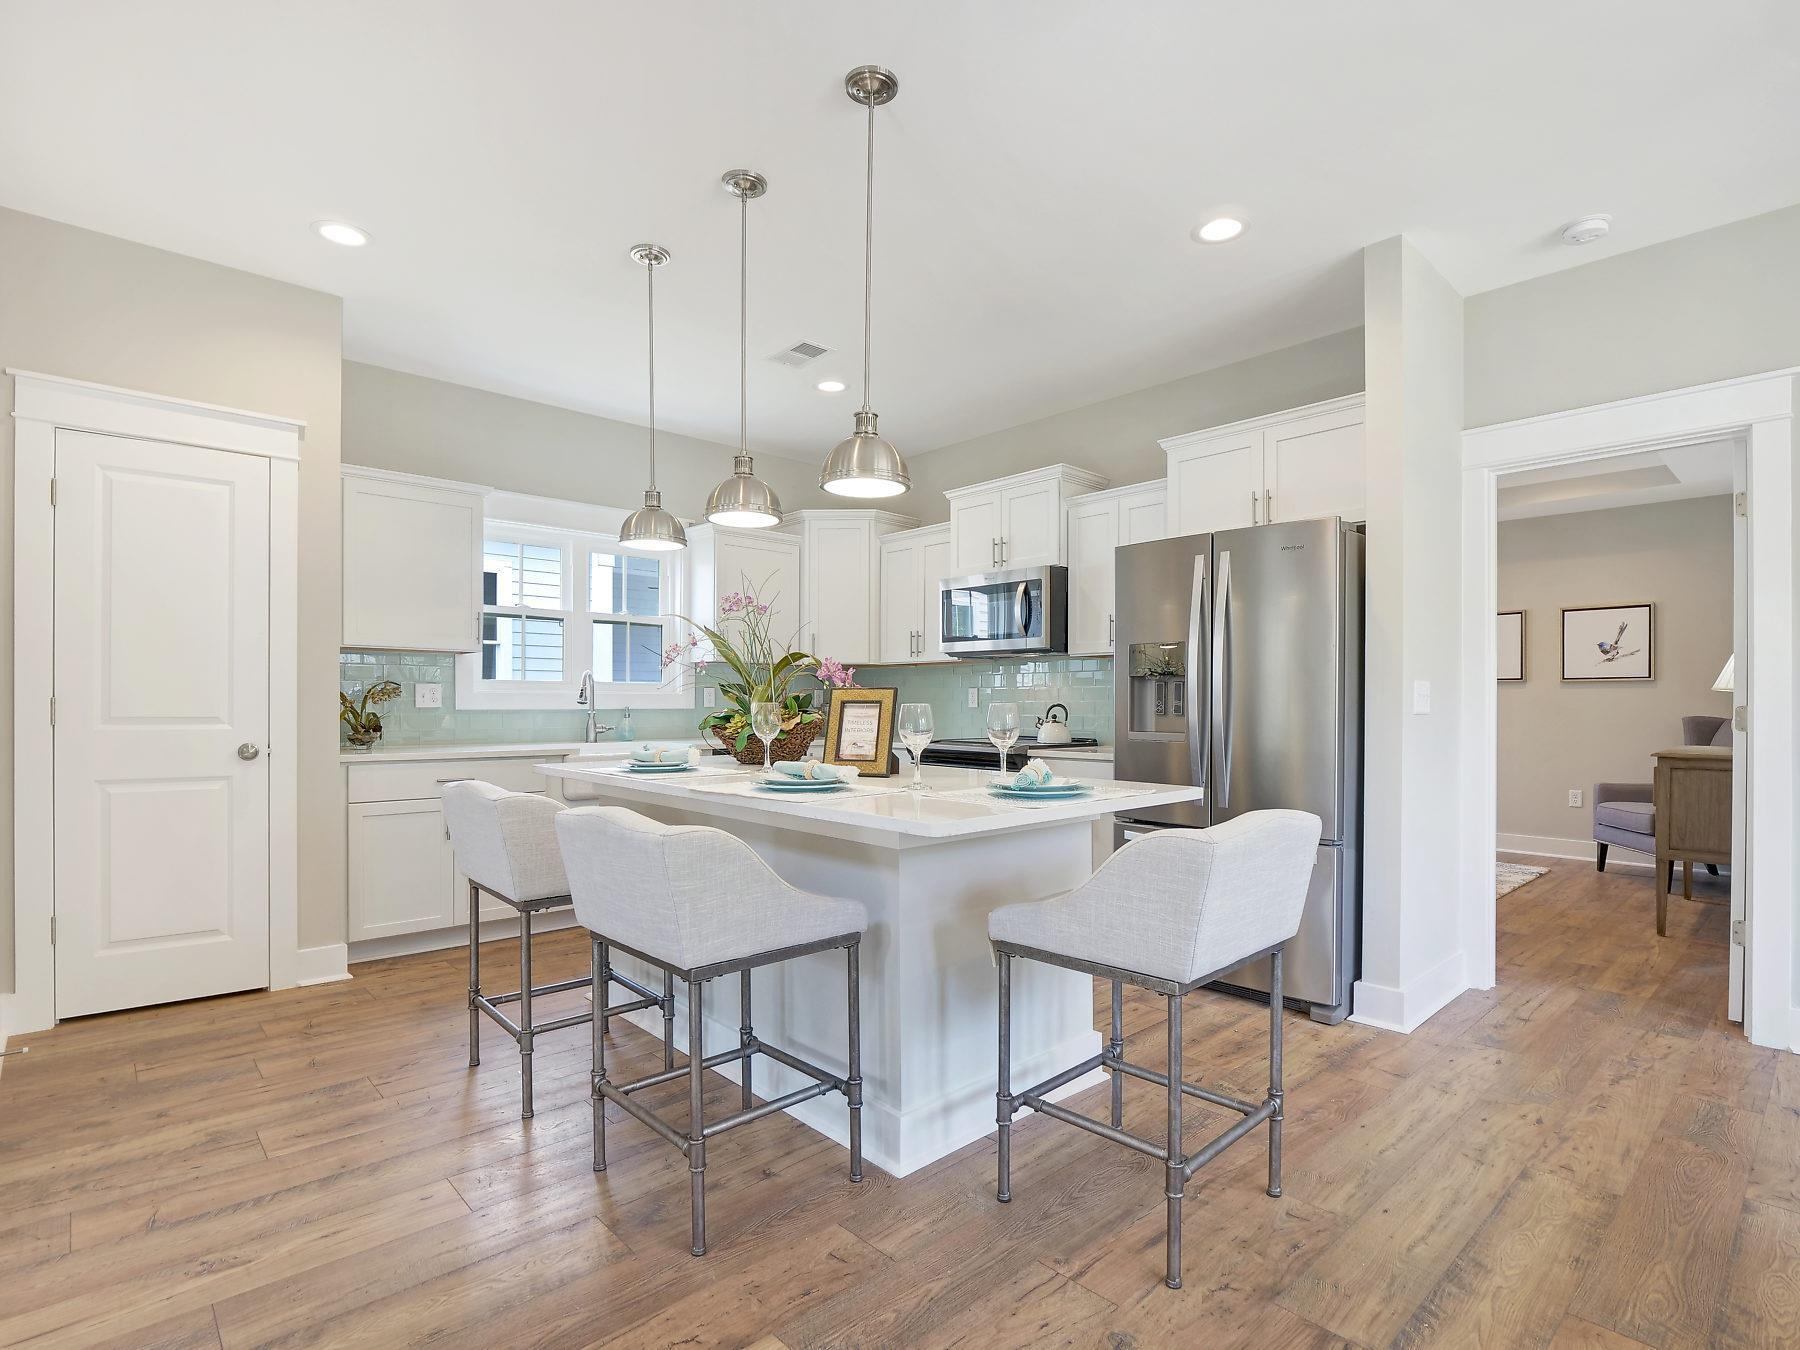 Kitchen featured in The Ashley River II By Village Park Homes in Hilton Head, SC